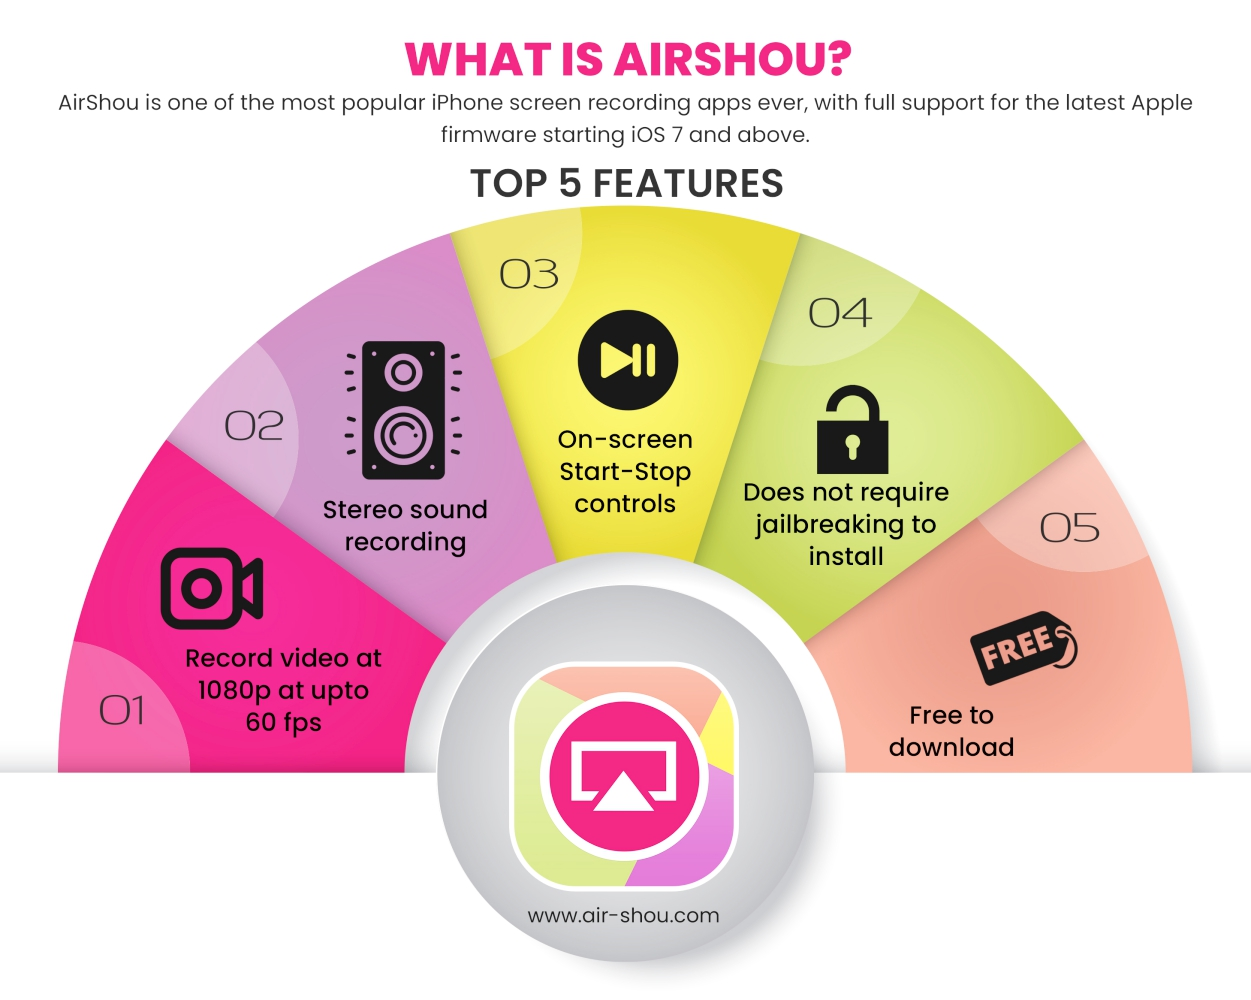 airshou app features